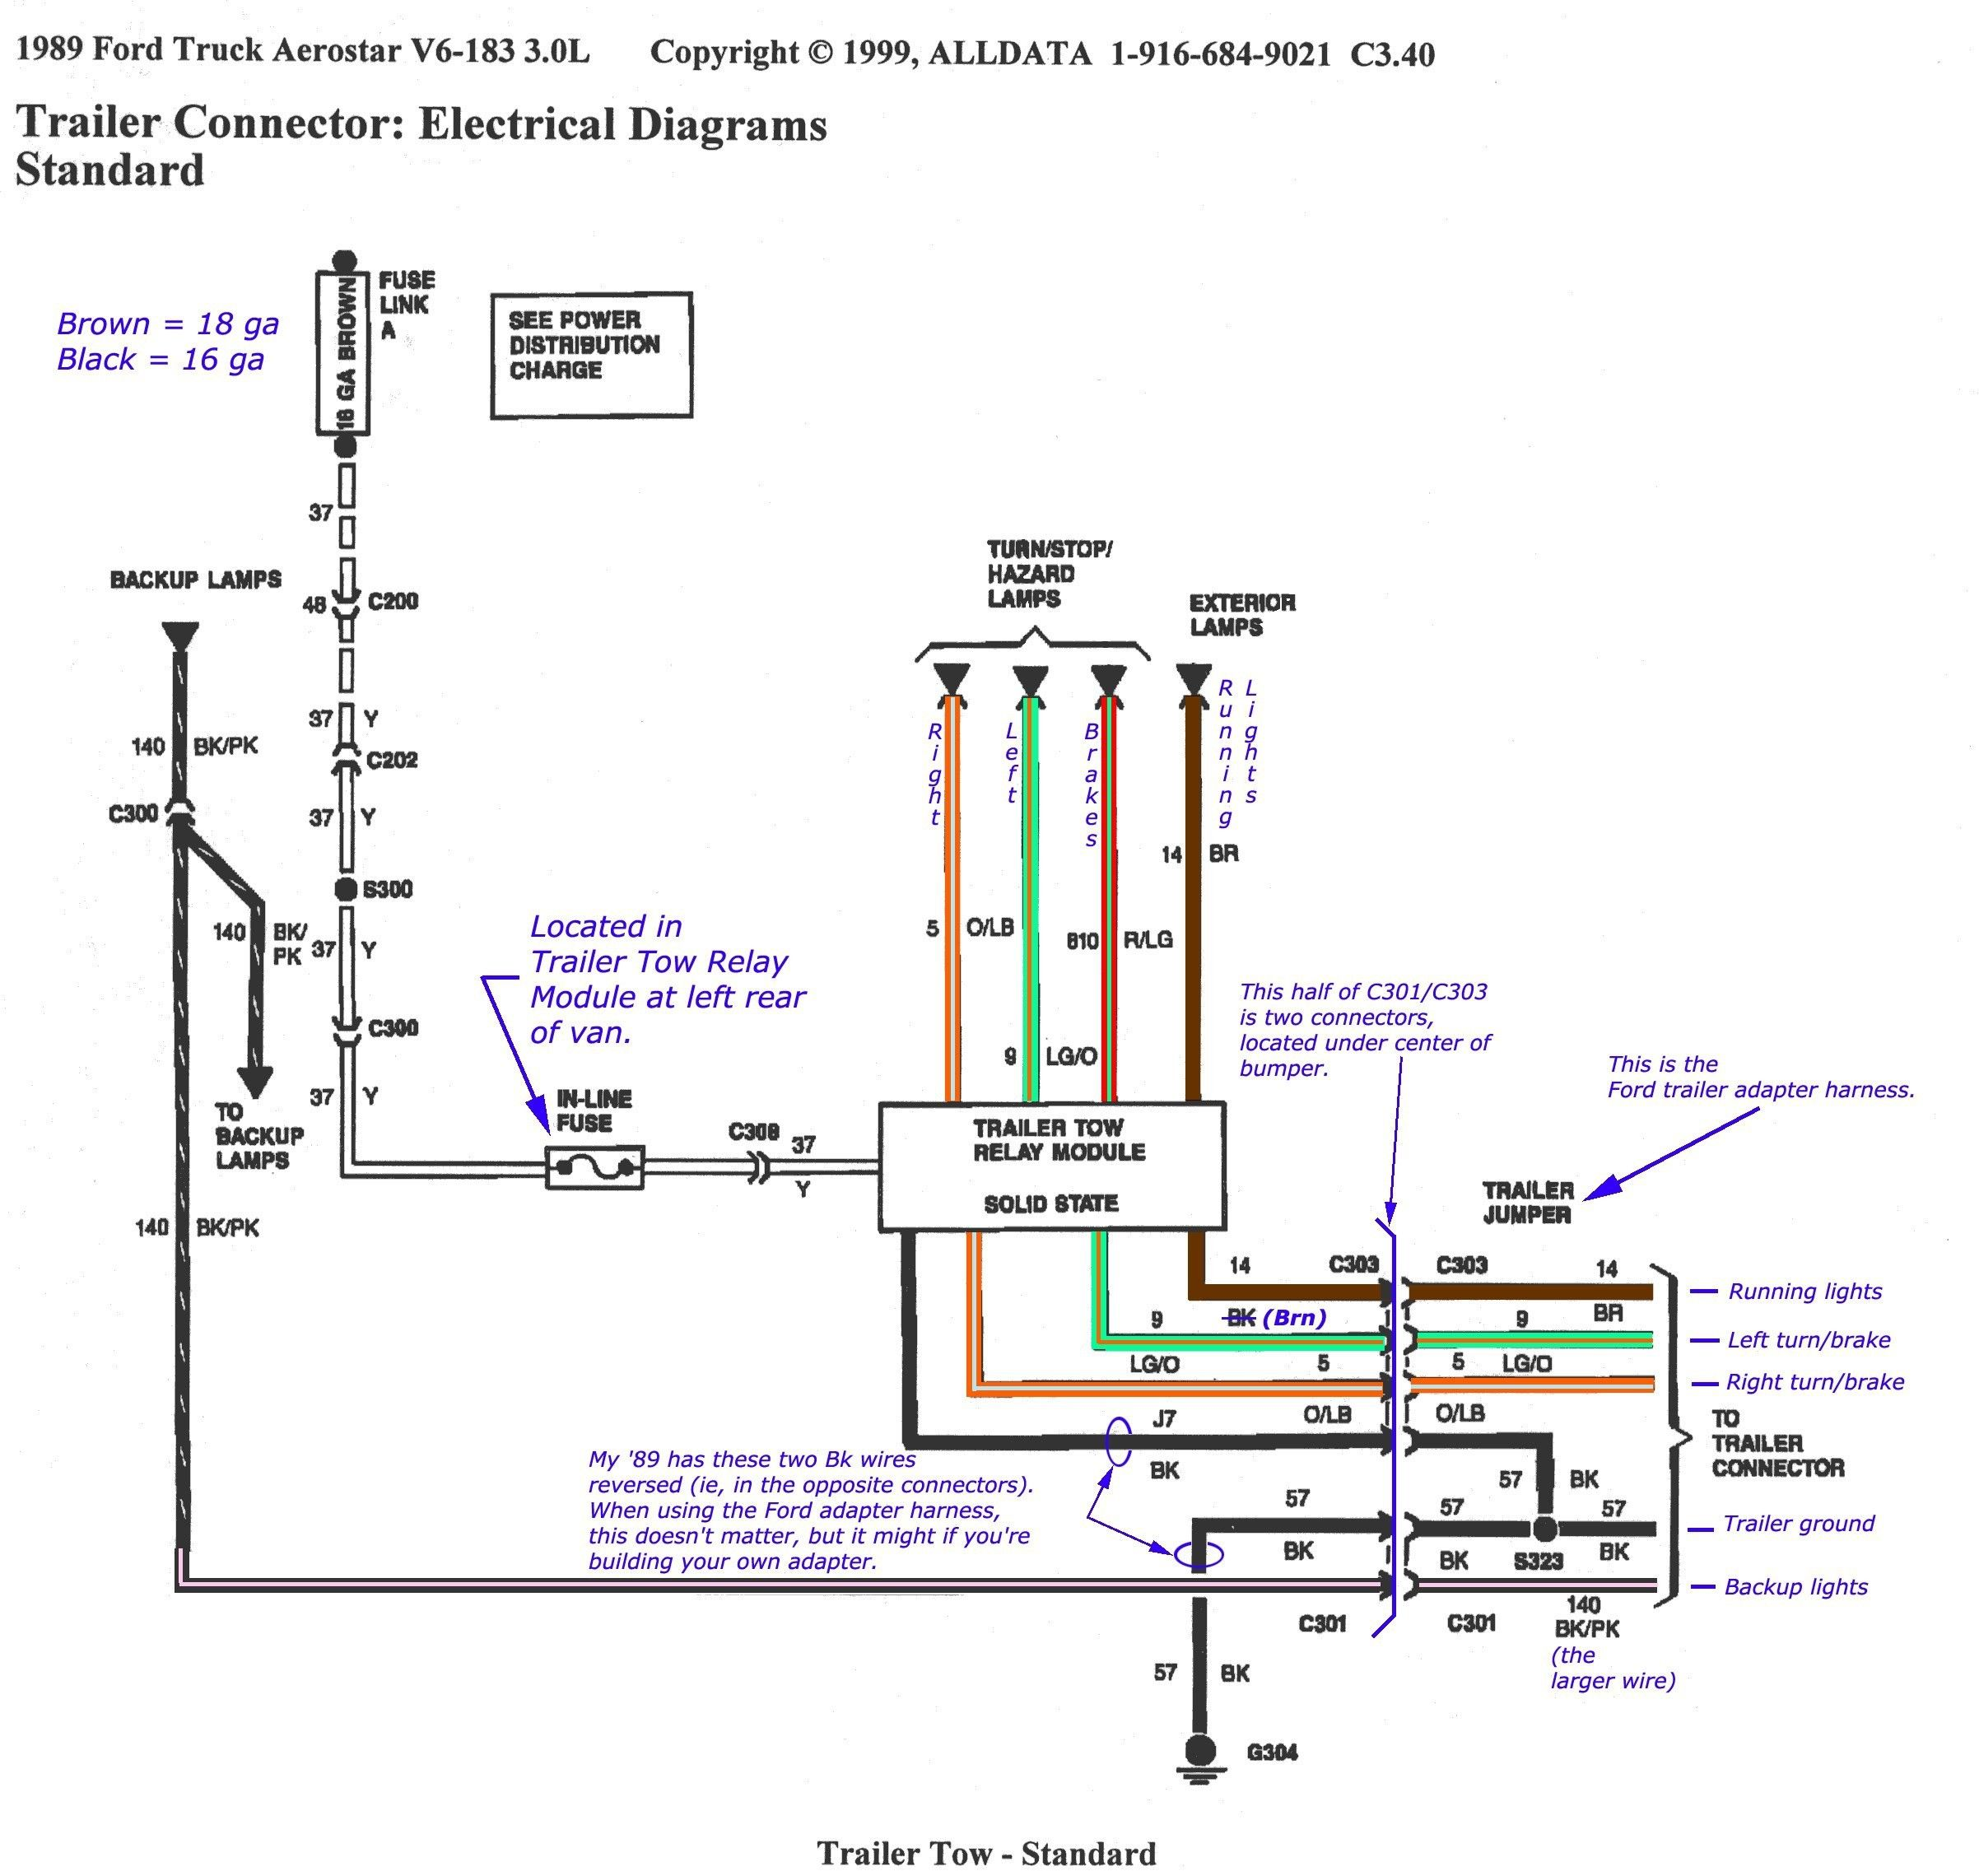 29 Wiring Diagram For Trailer Light And Brakes Bookingritzcarlton Info Trailer Wiring Diagram Trailer Light Wiring Electrical Wiring Diagram